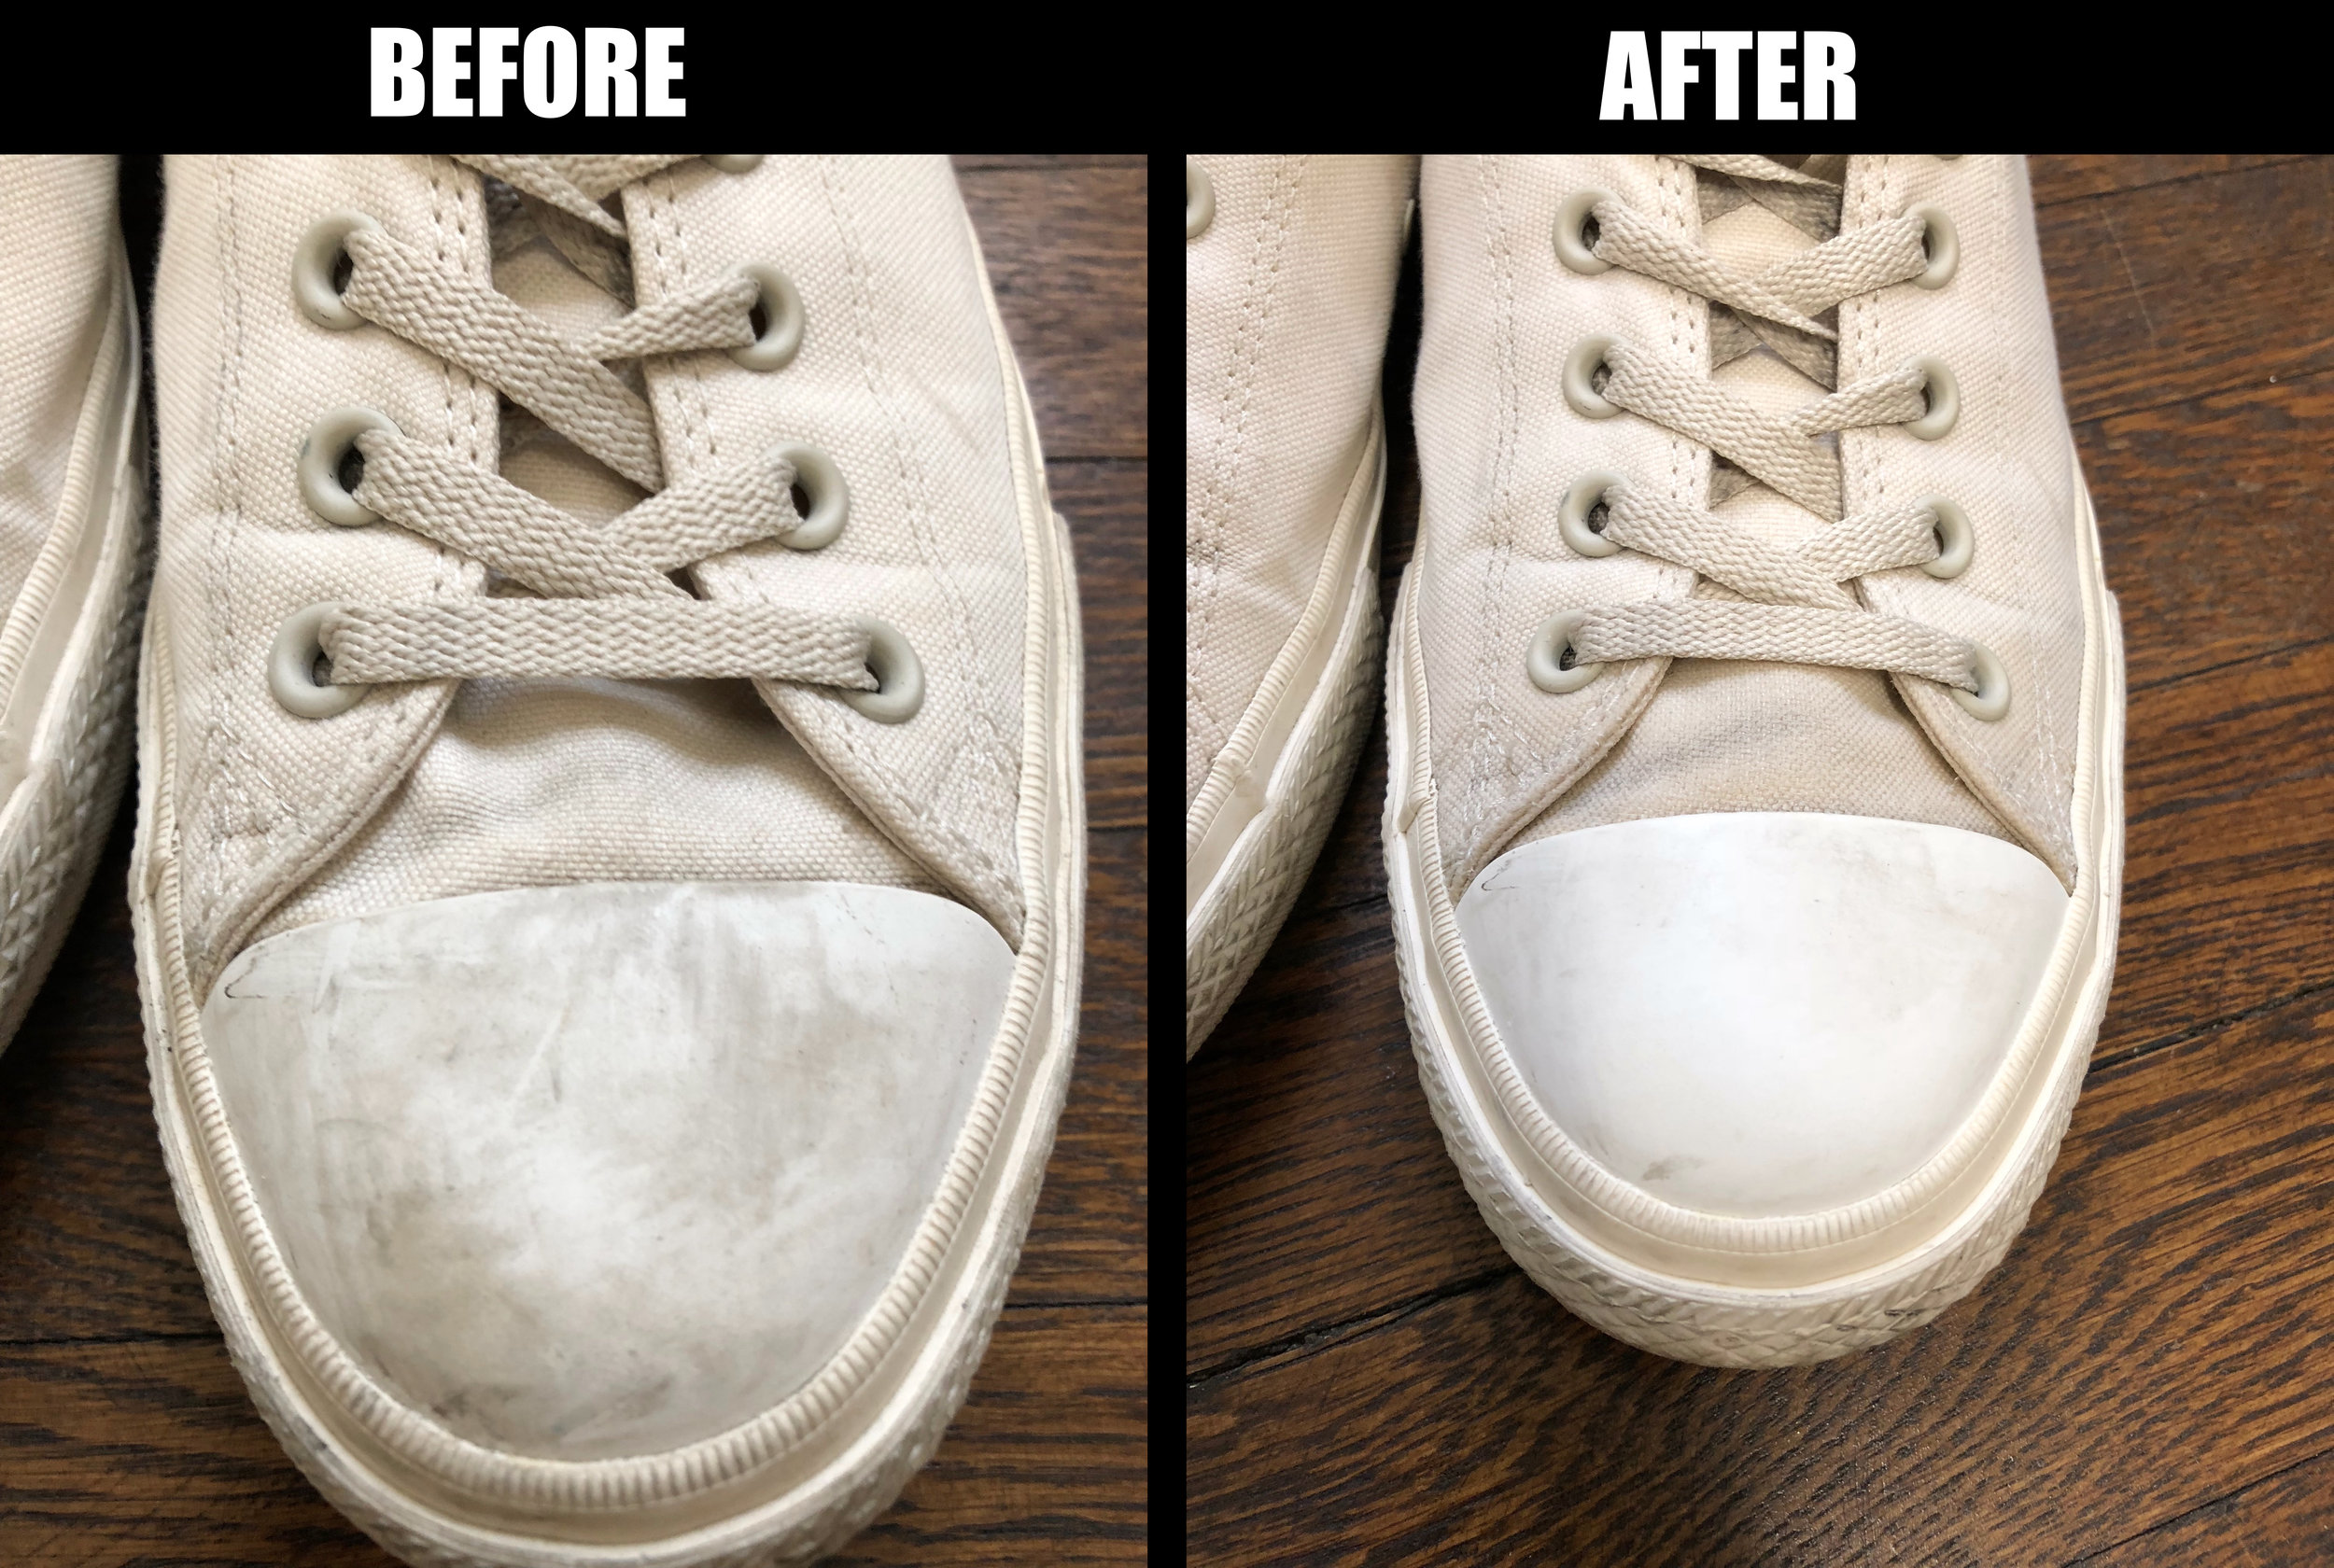 Before and after the Jason Markk shoe cleaning